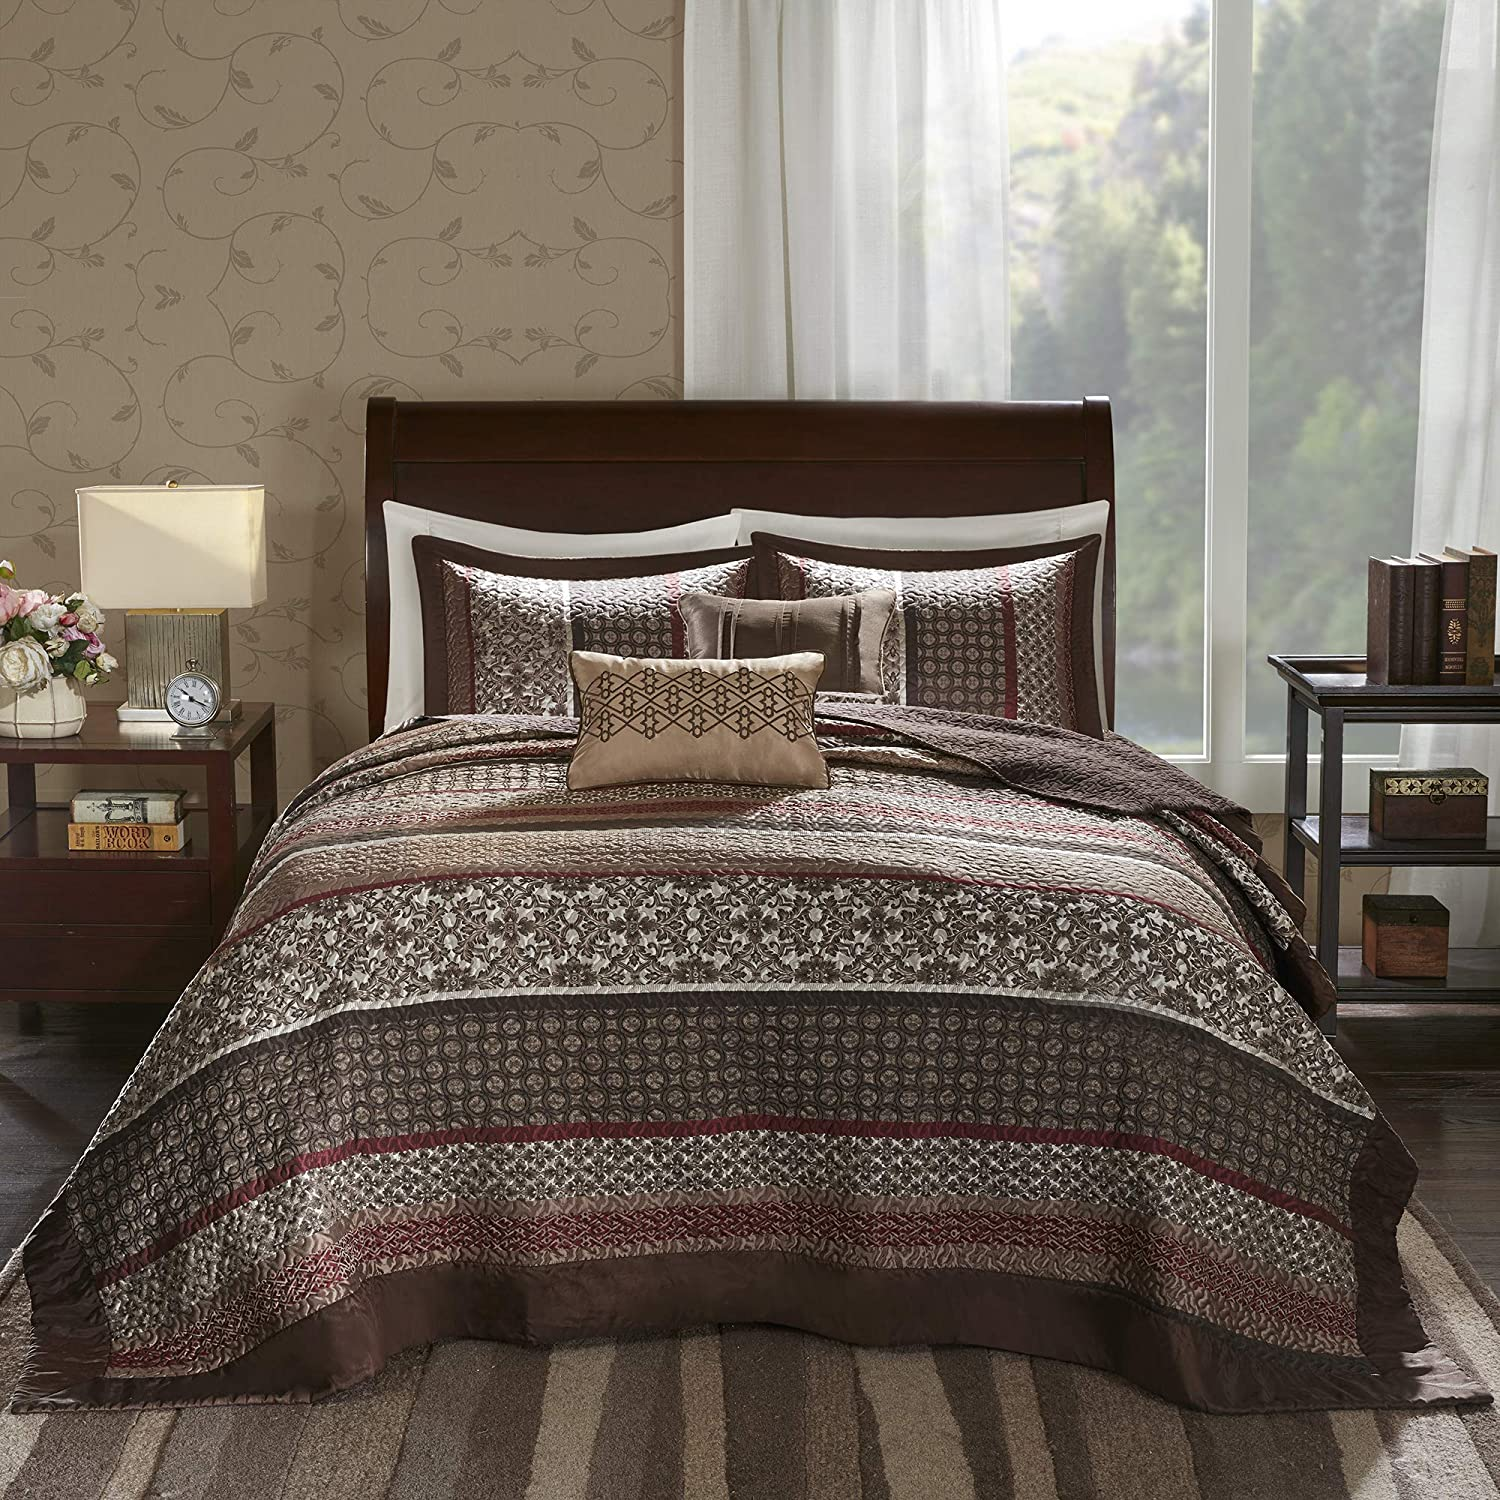 Madison Park Princeton Queen Size Quilt Bedding Set - Crimson Red, Jacquard Patterned Striped